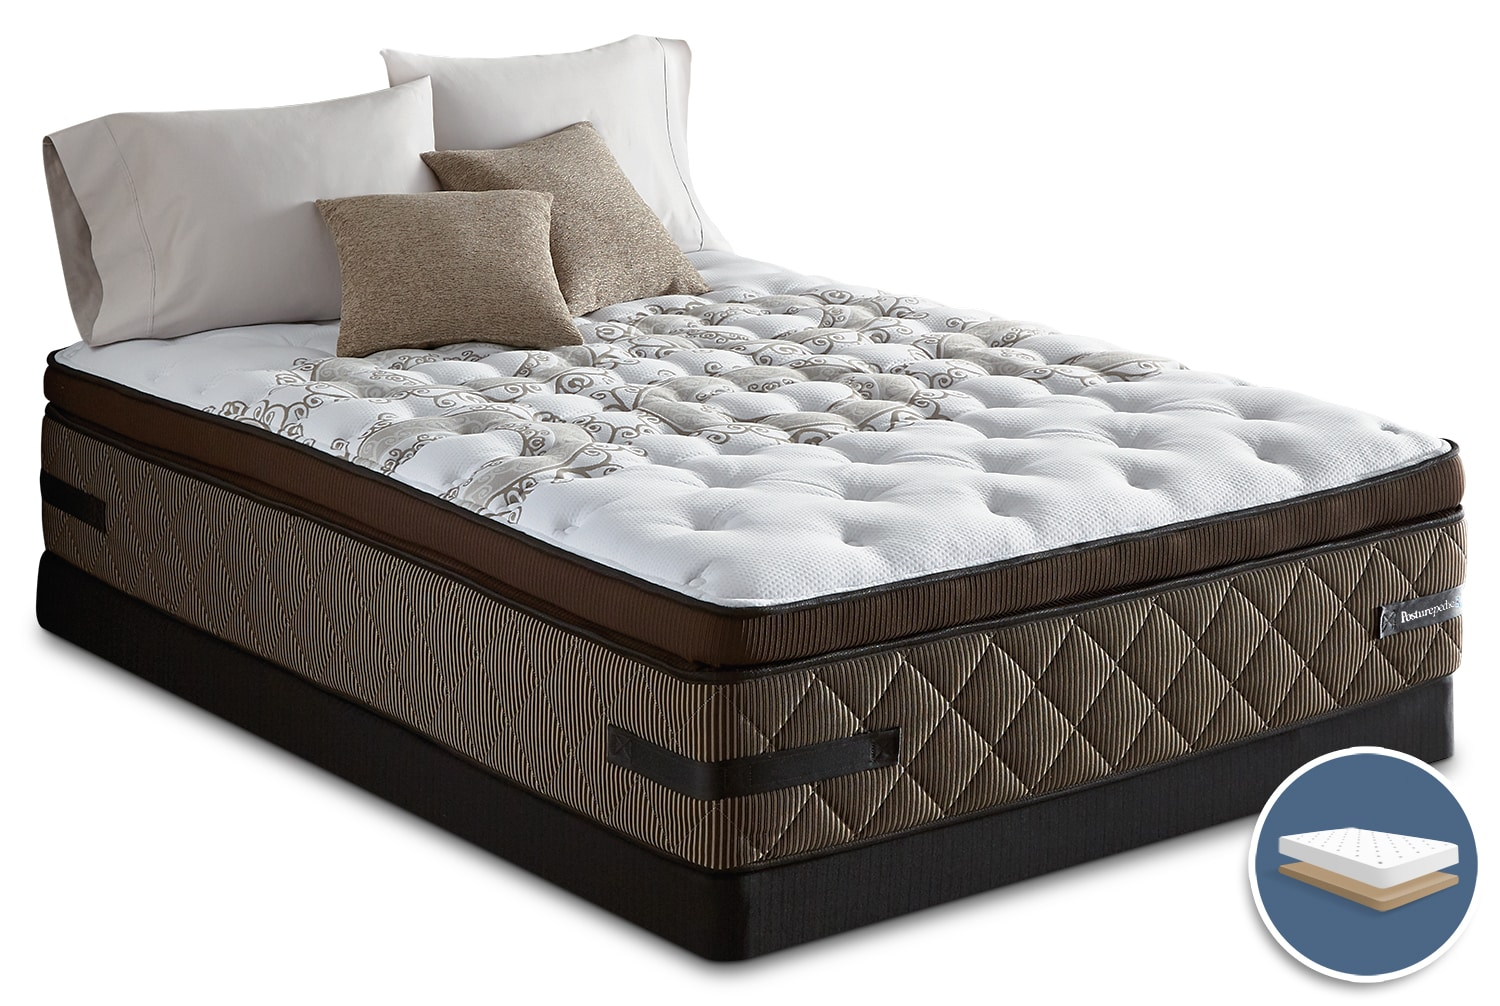 Mattresses and Bedding - Sealy Crown Jewel Sunsera Euro Pillow-Top Firm Low-Profile Queen Mattress Set